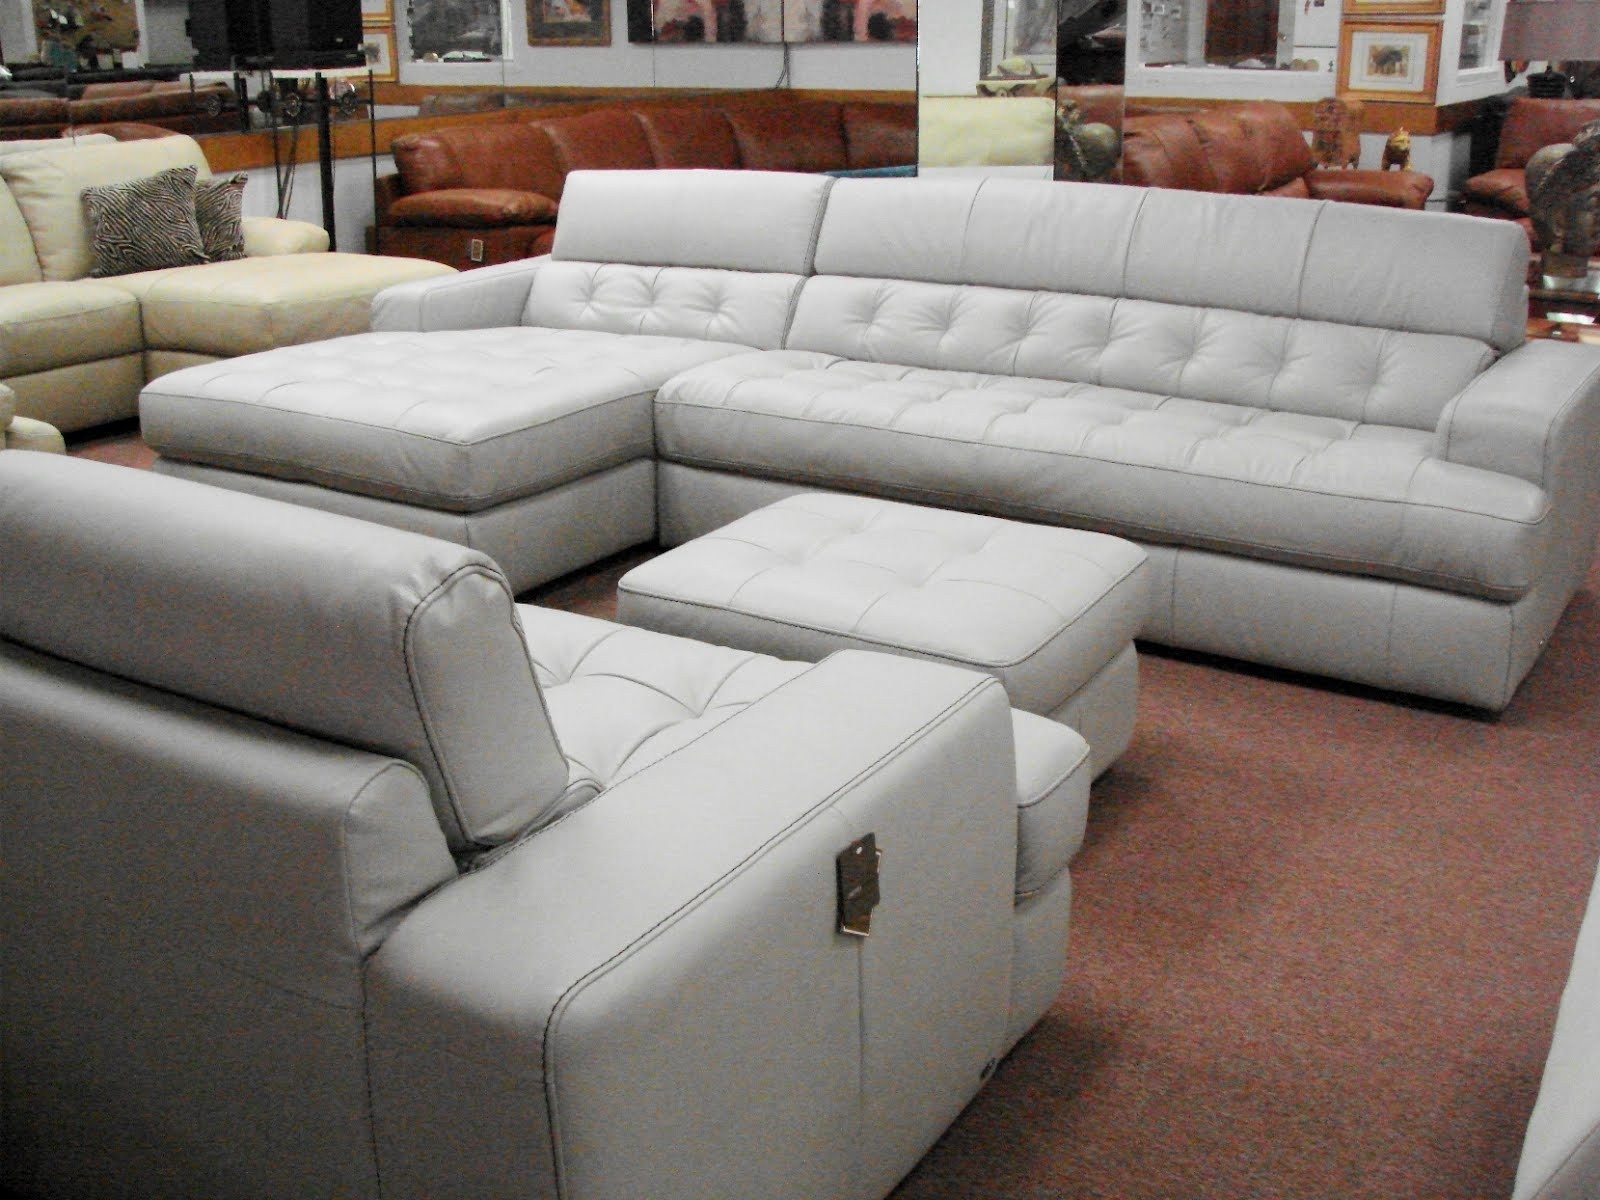 Preferred Natuzzi Leather Sofas & Sectionalsinterior Concepts Furniture Within Natuzzi Sectional Sofas (View 12 of 15)